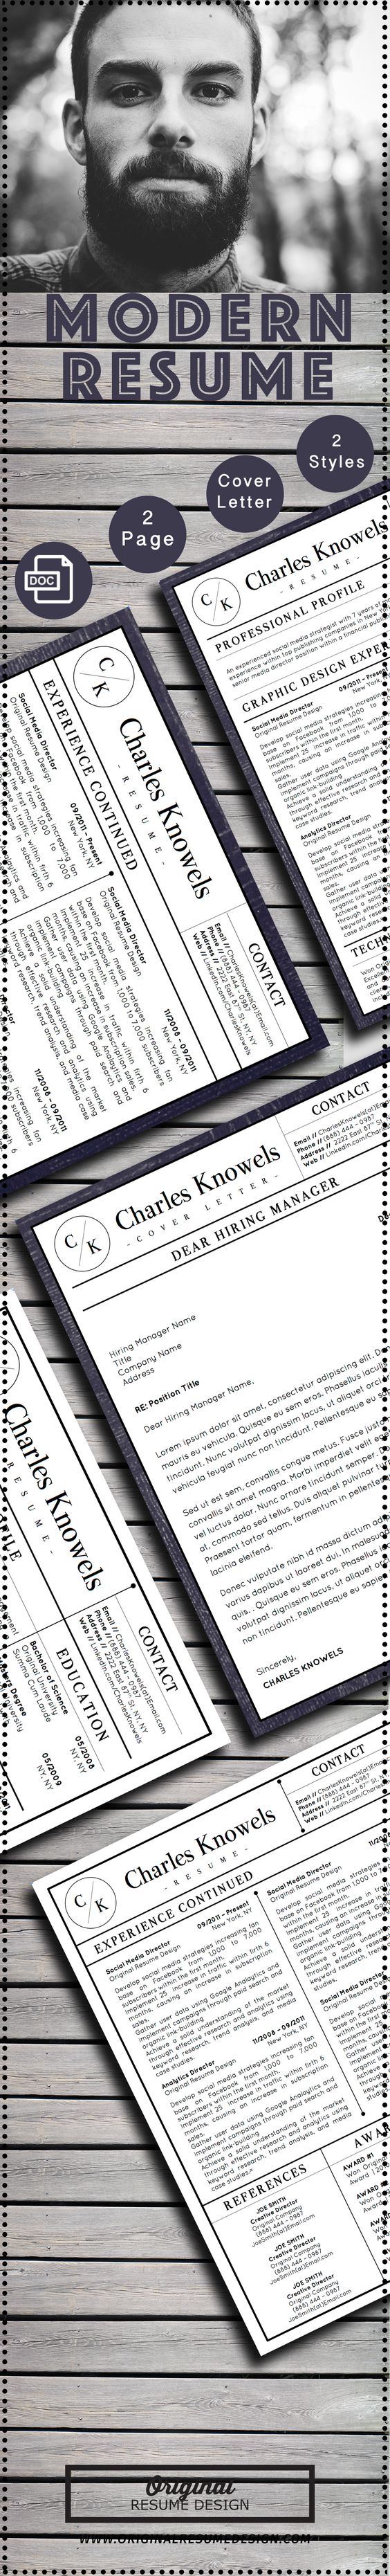 Modern resume template editable in MS Word including 2 styles of background, 2-page version, and matching cover letters.